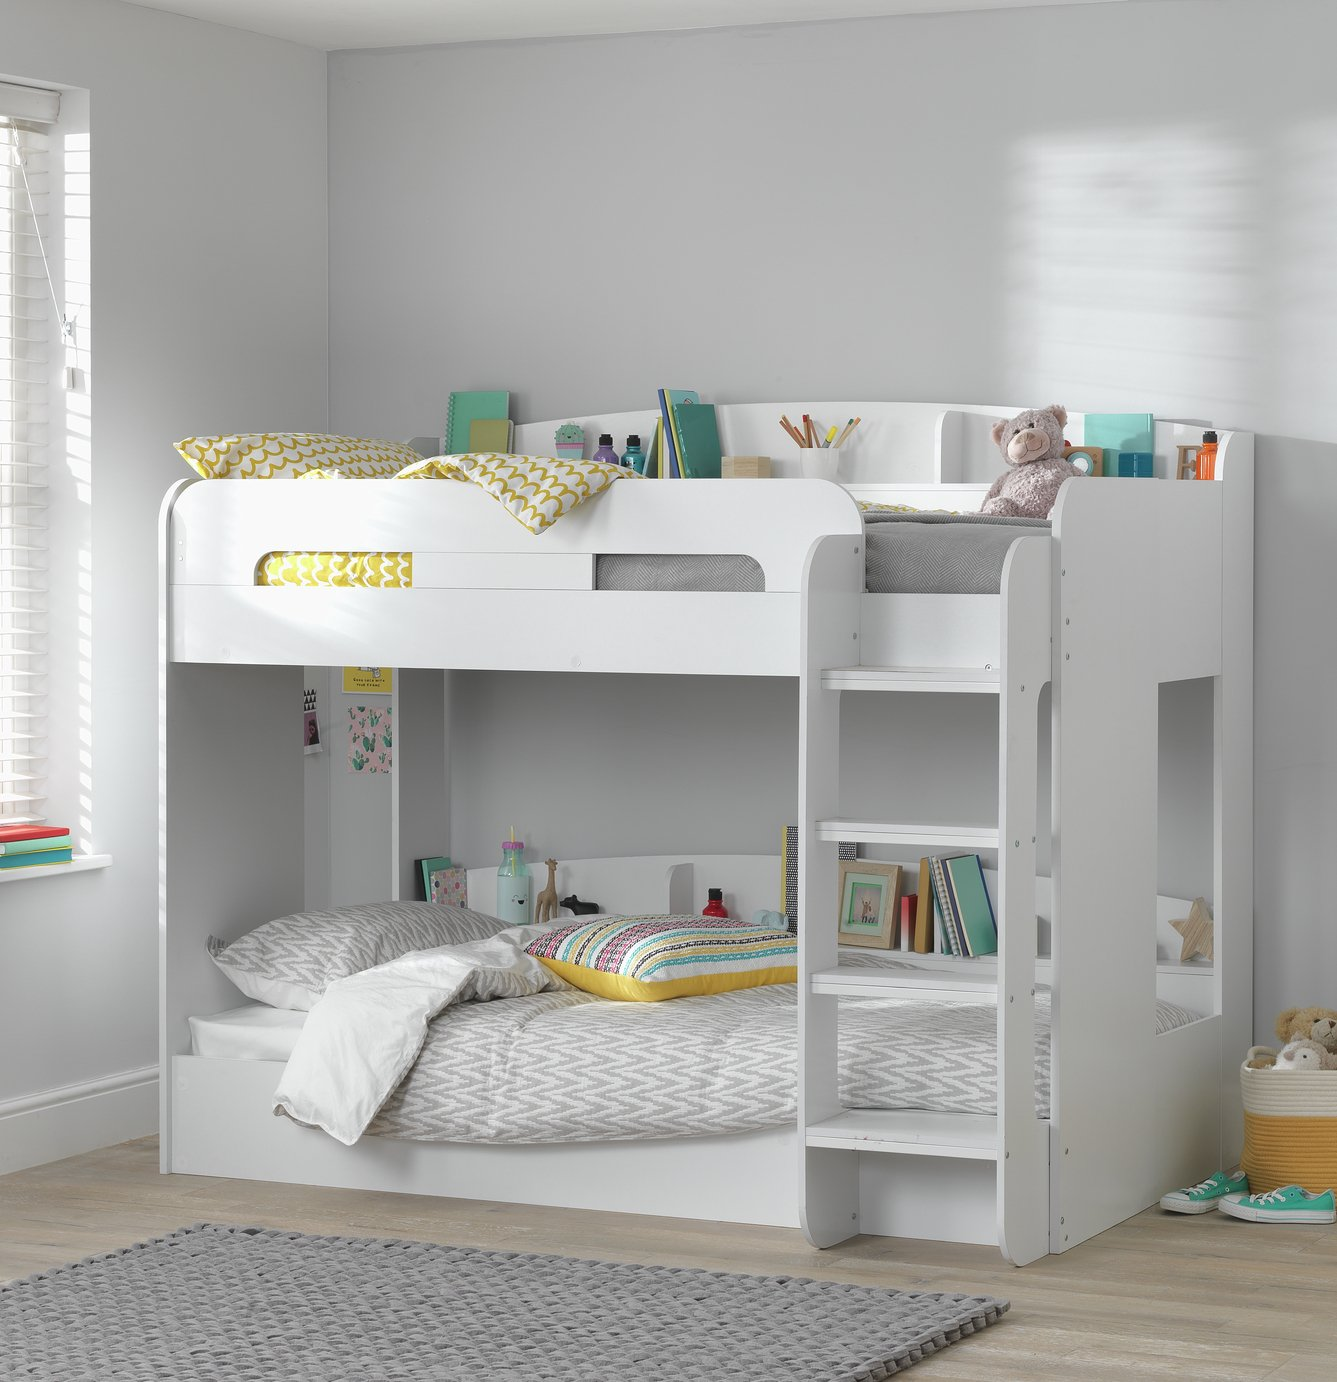 Argos Home Ultimate White Bunk Bed & 2 Kids Mattresses review